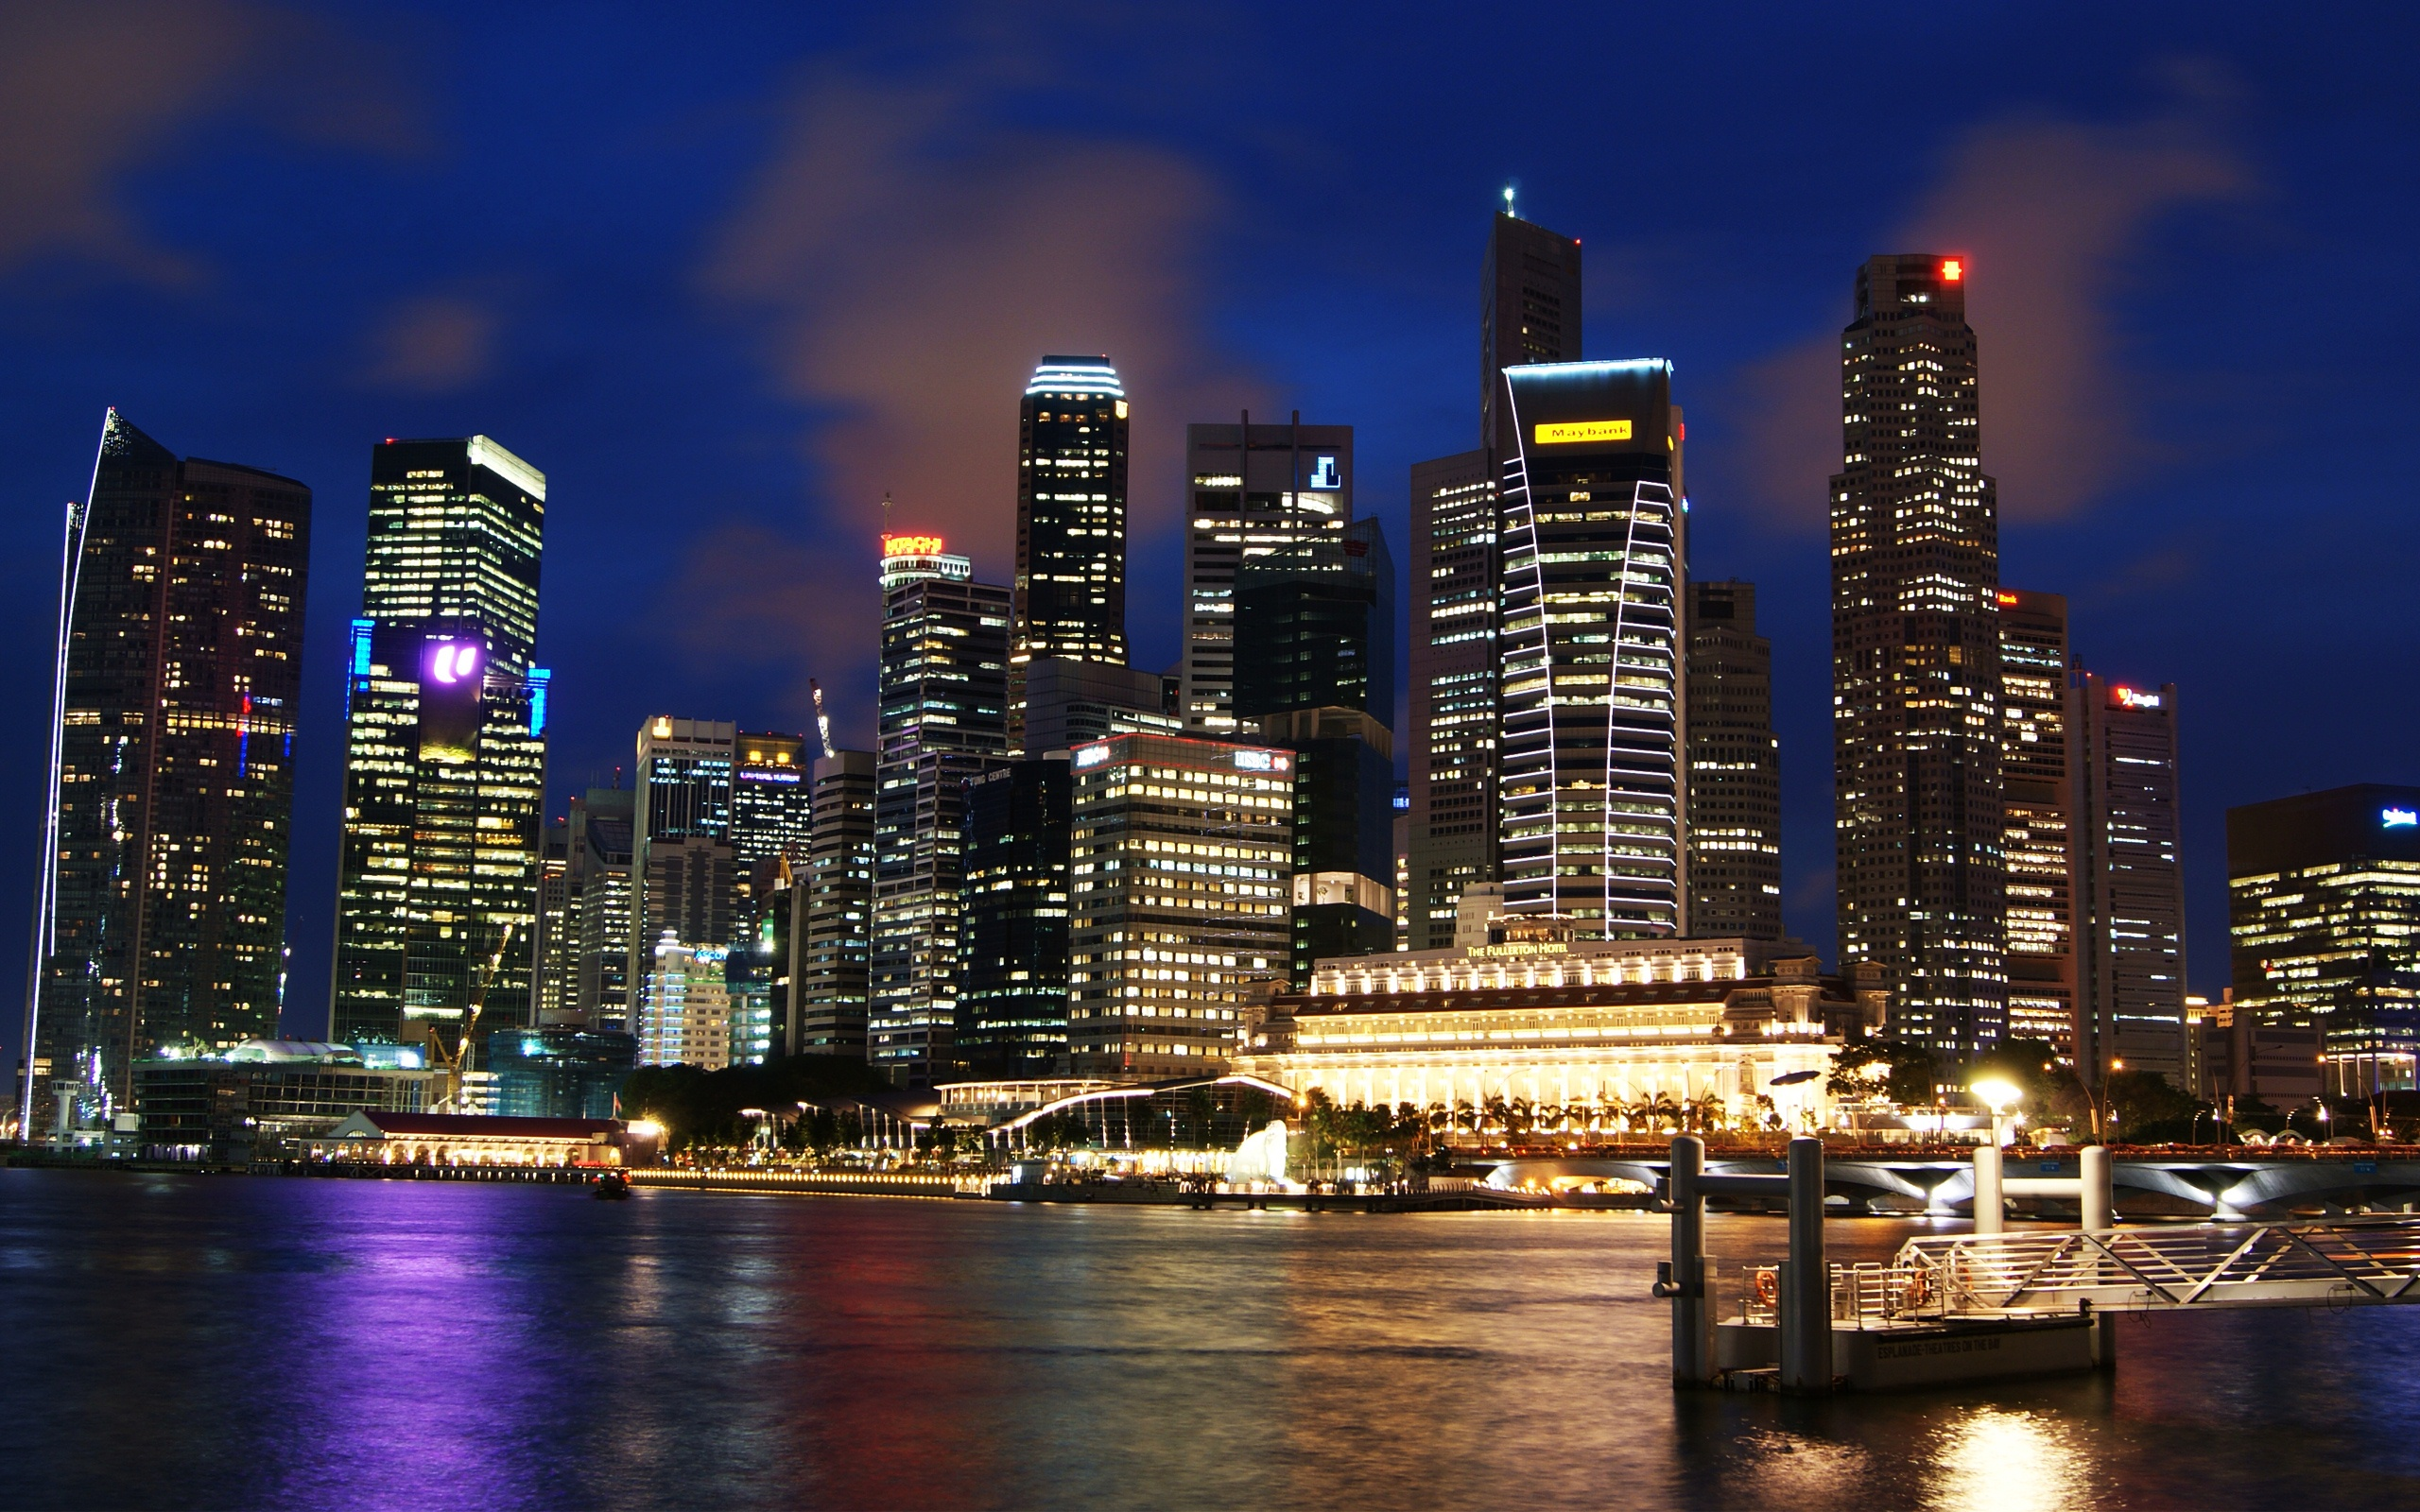 singapore_skyline-wide hdwallpapers.in